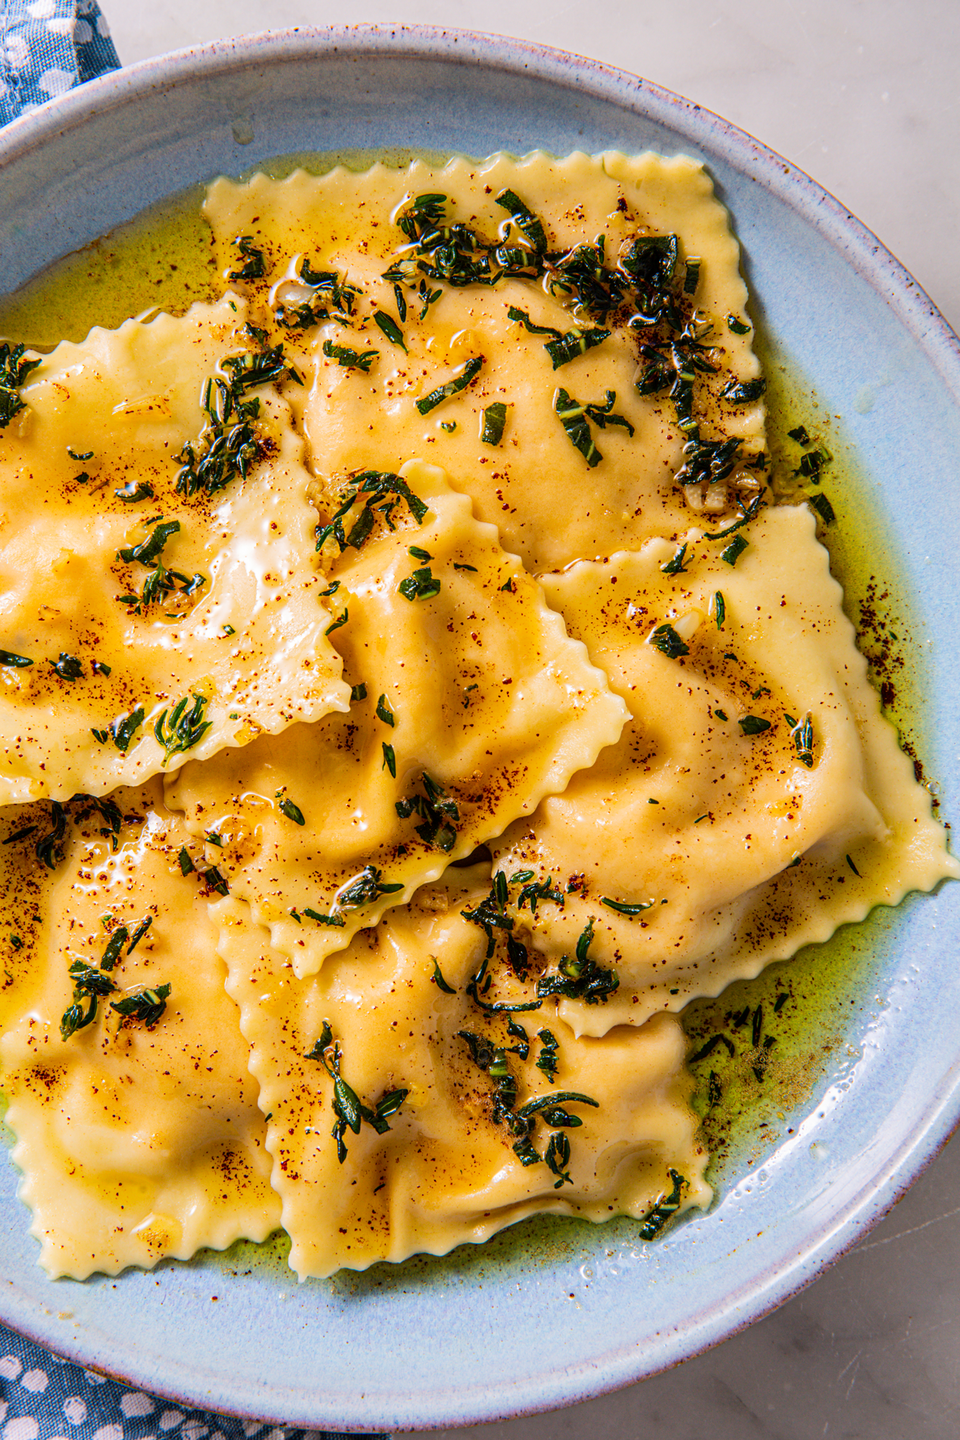 """<p>Making your own ravioli seems hard but is SO worth it.</p><p>Get the recipe from <a href=""""https://www.delish.com/cooking/recipe-ideas/recipes/a3963/butternut-squash-ravioli-recipe/"""" rel=""""nofollow noopener"""" target=""""_blank"""" data-ylk=""""slk:Delish"""" class=""""link rapid-noclick-resp"""">Delish</a>.</p>"""